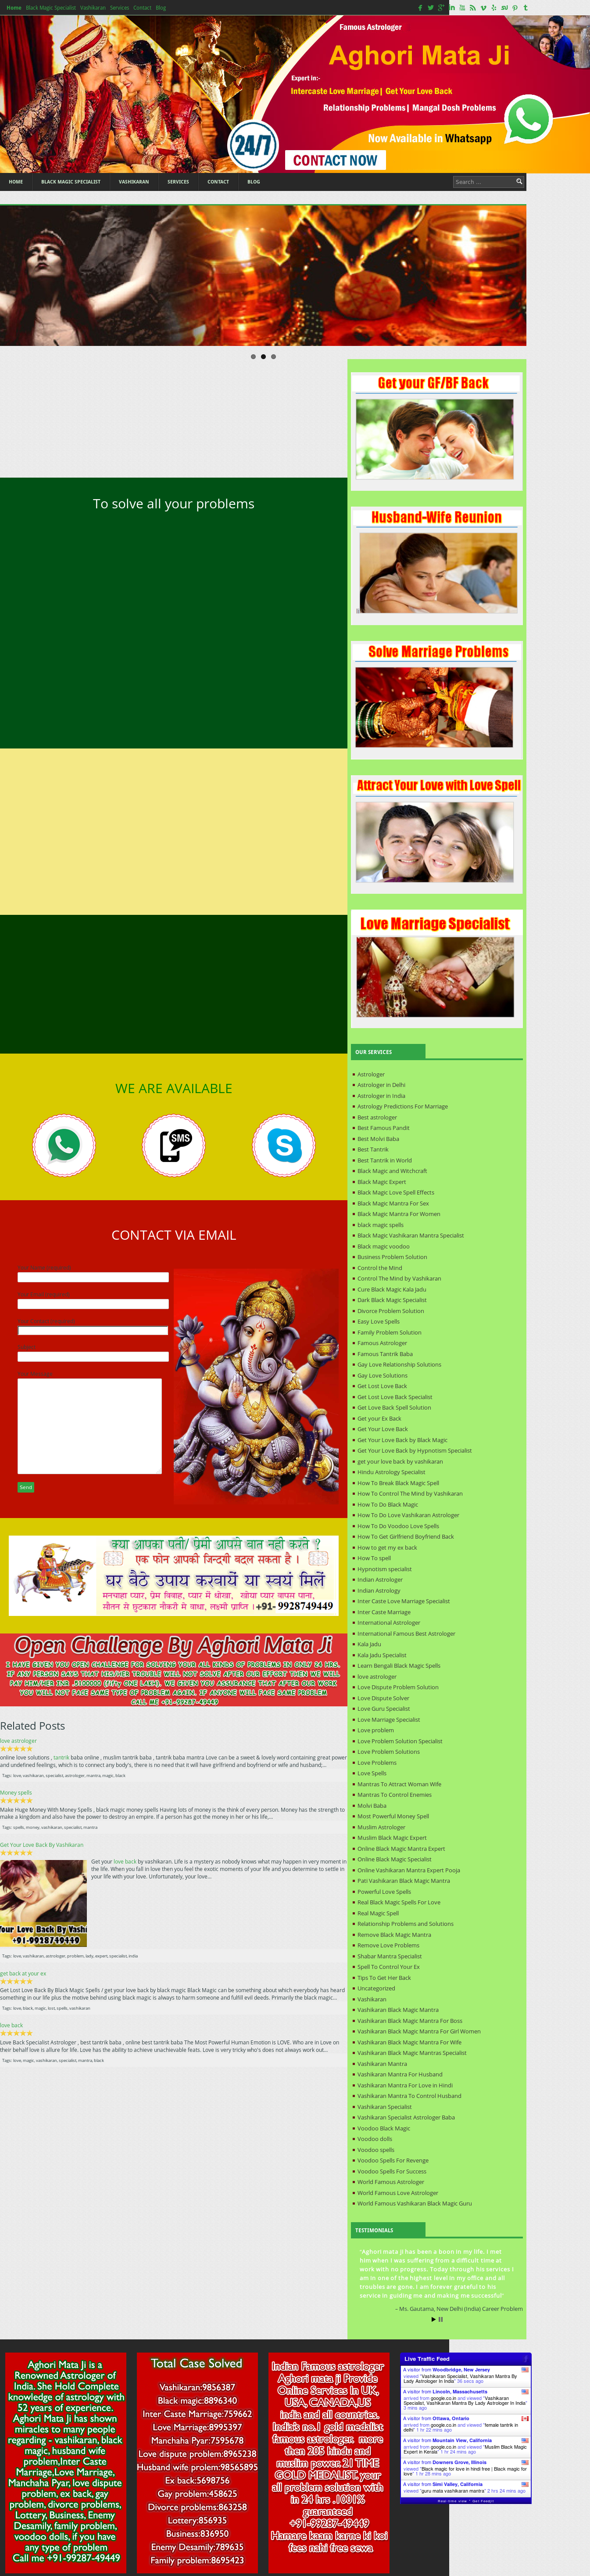 Lady Astrologer India Competitors, Revenue and Employees - Owler